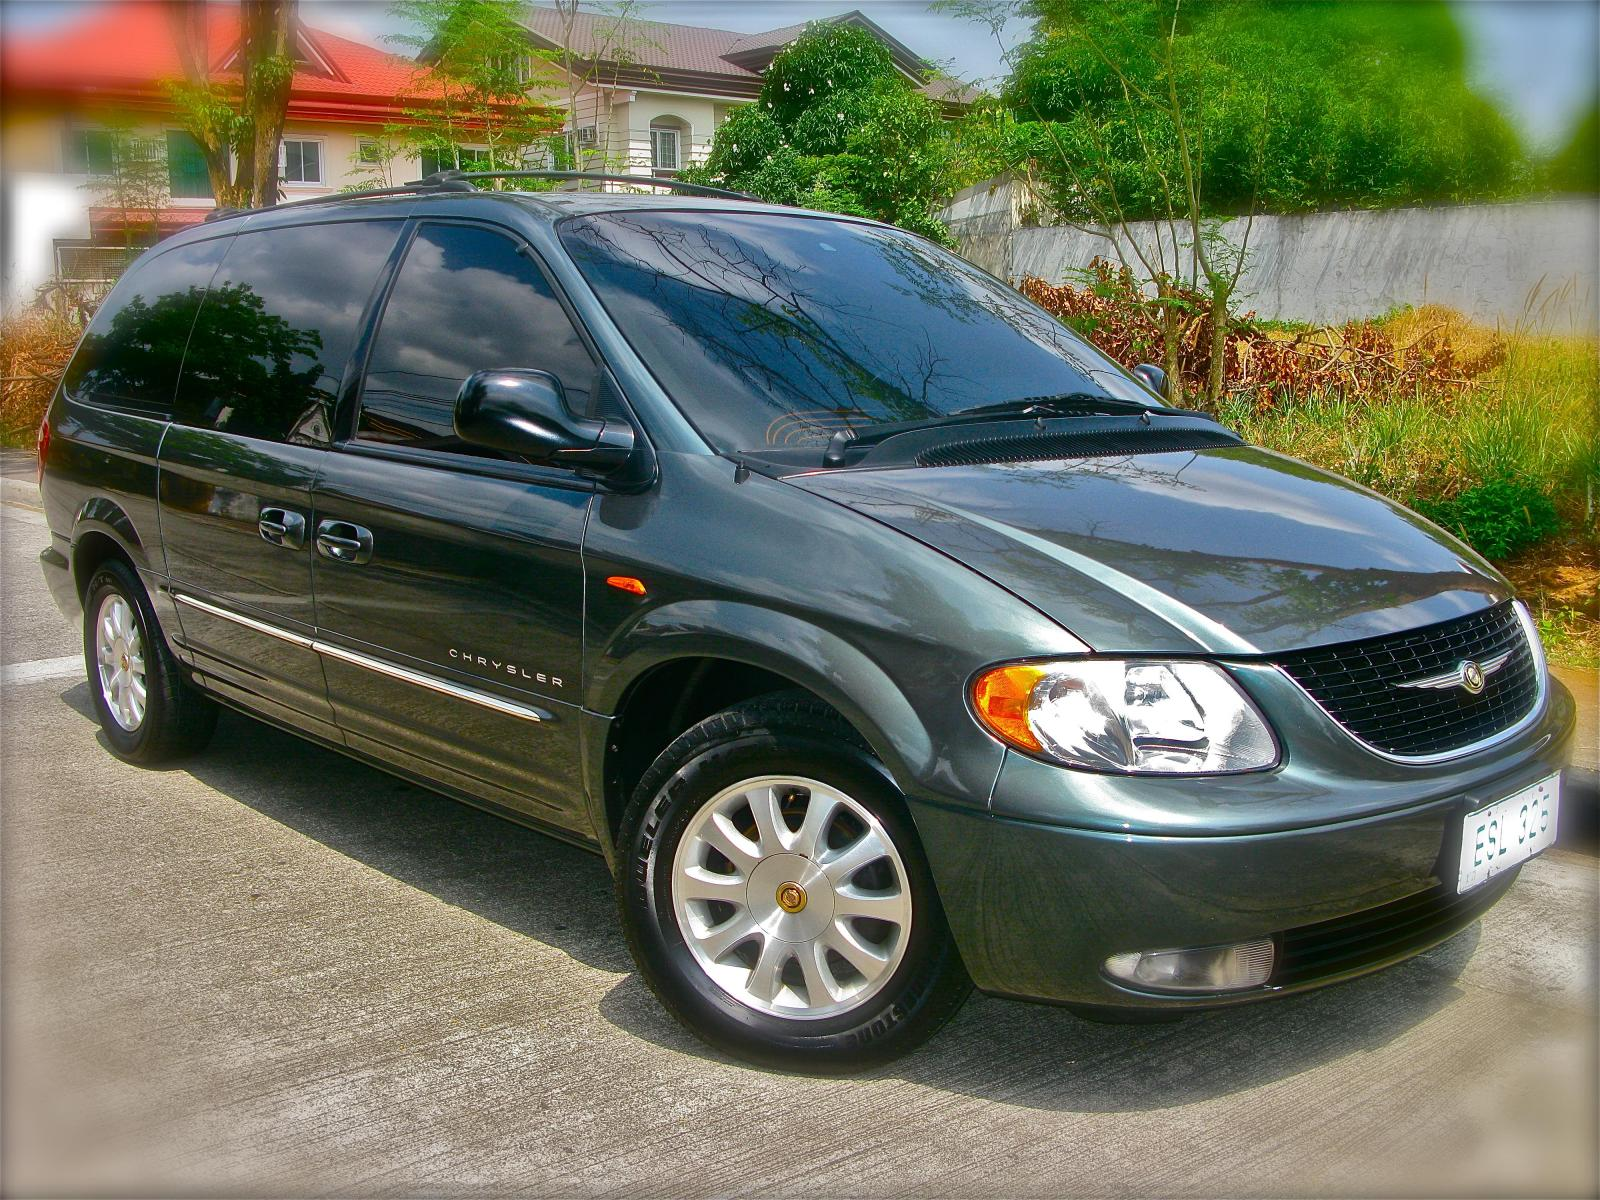 2001 chrysler town and country information and photos zombiedrive. Black Bedroom Furniture Sets. Home Design Ideas